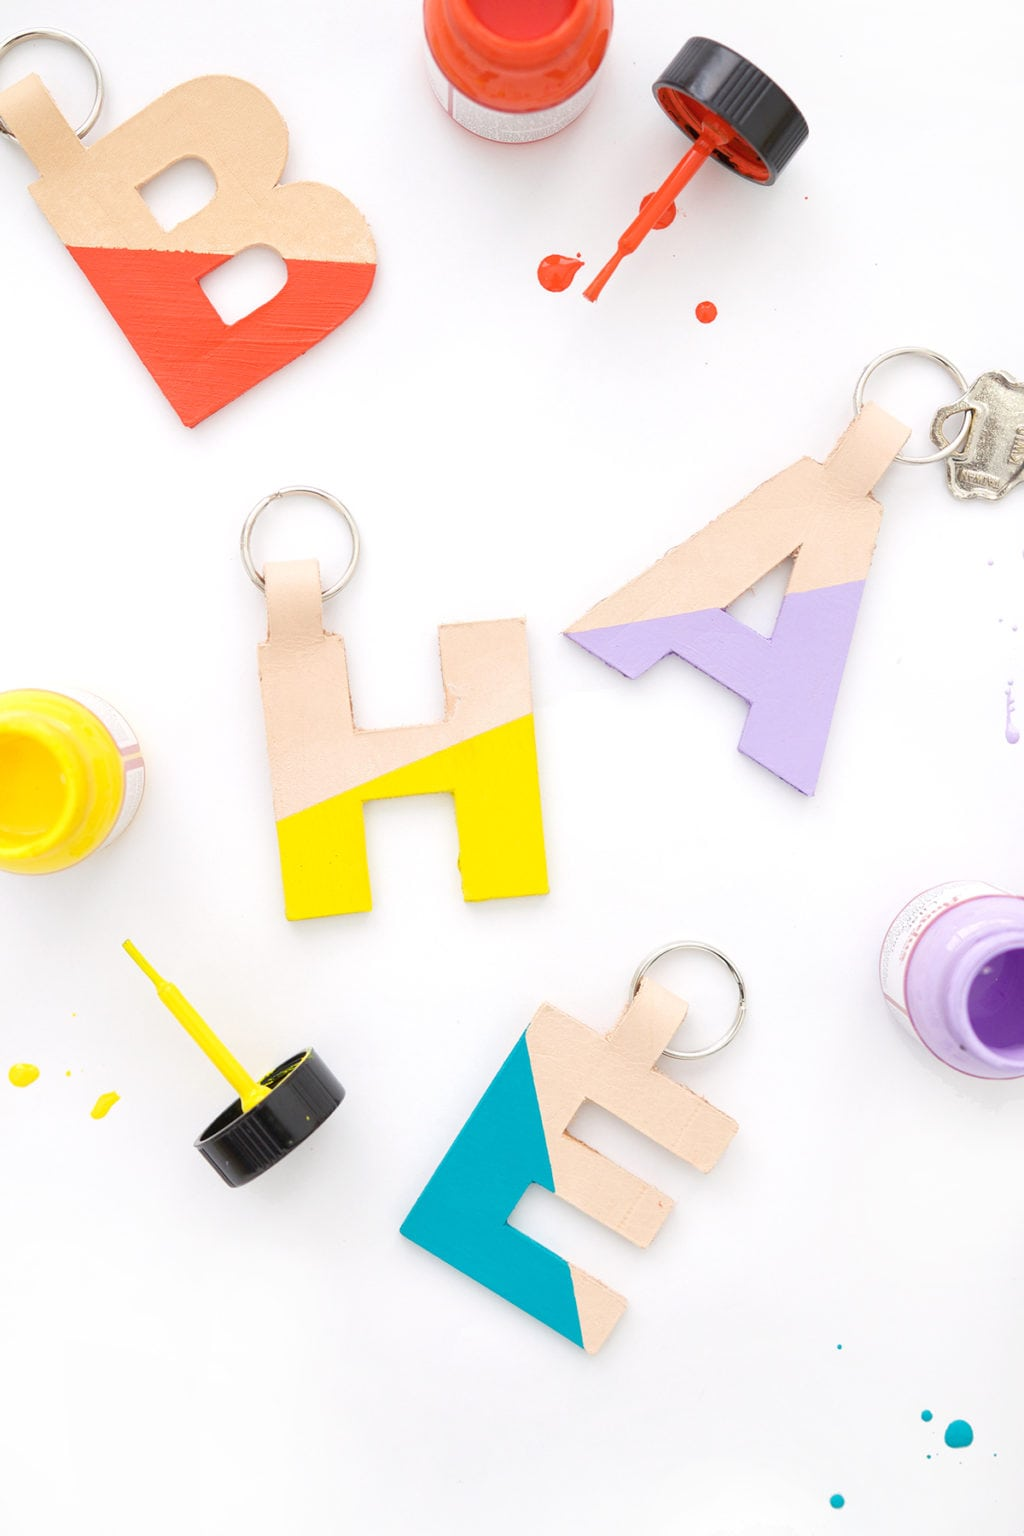 monogram keyrings made from leather painted in color blocking patterns